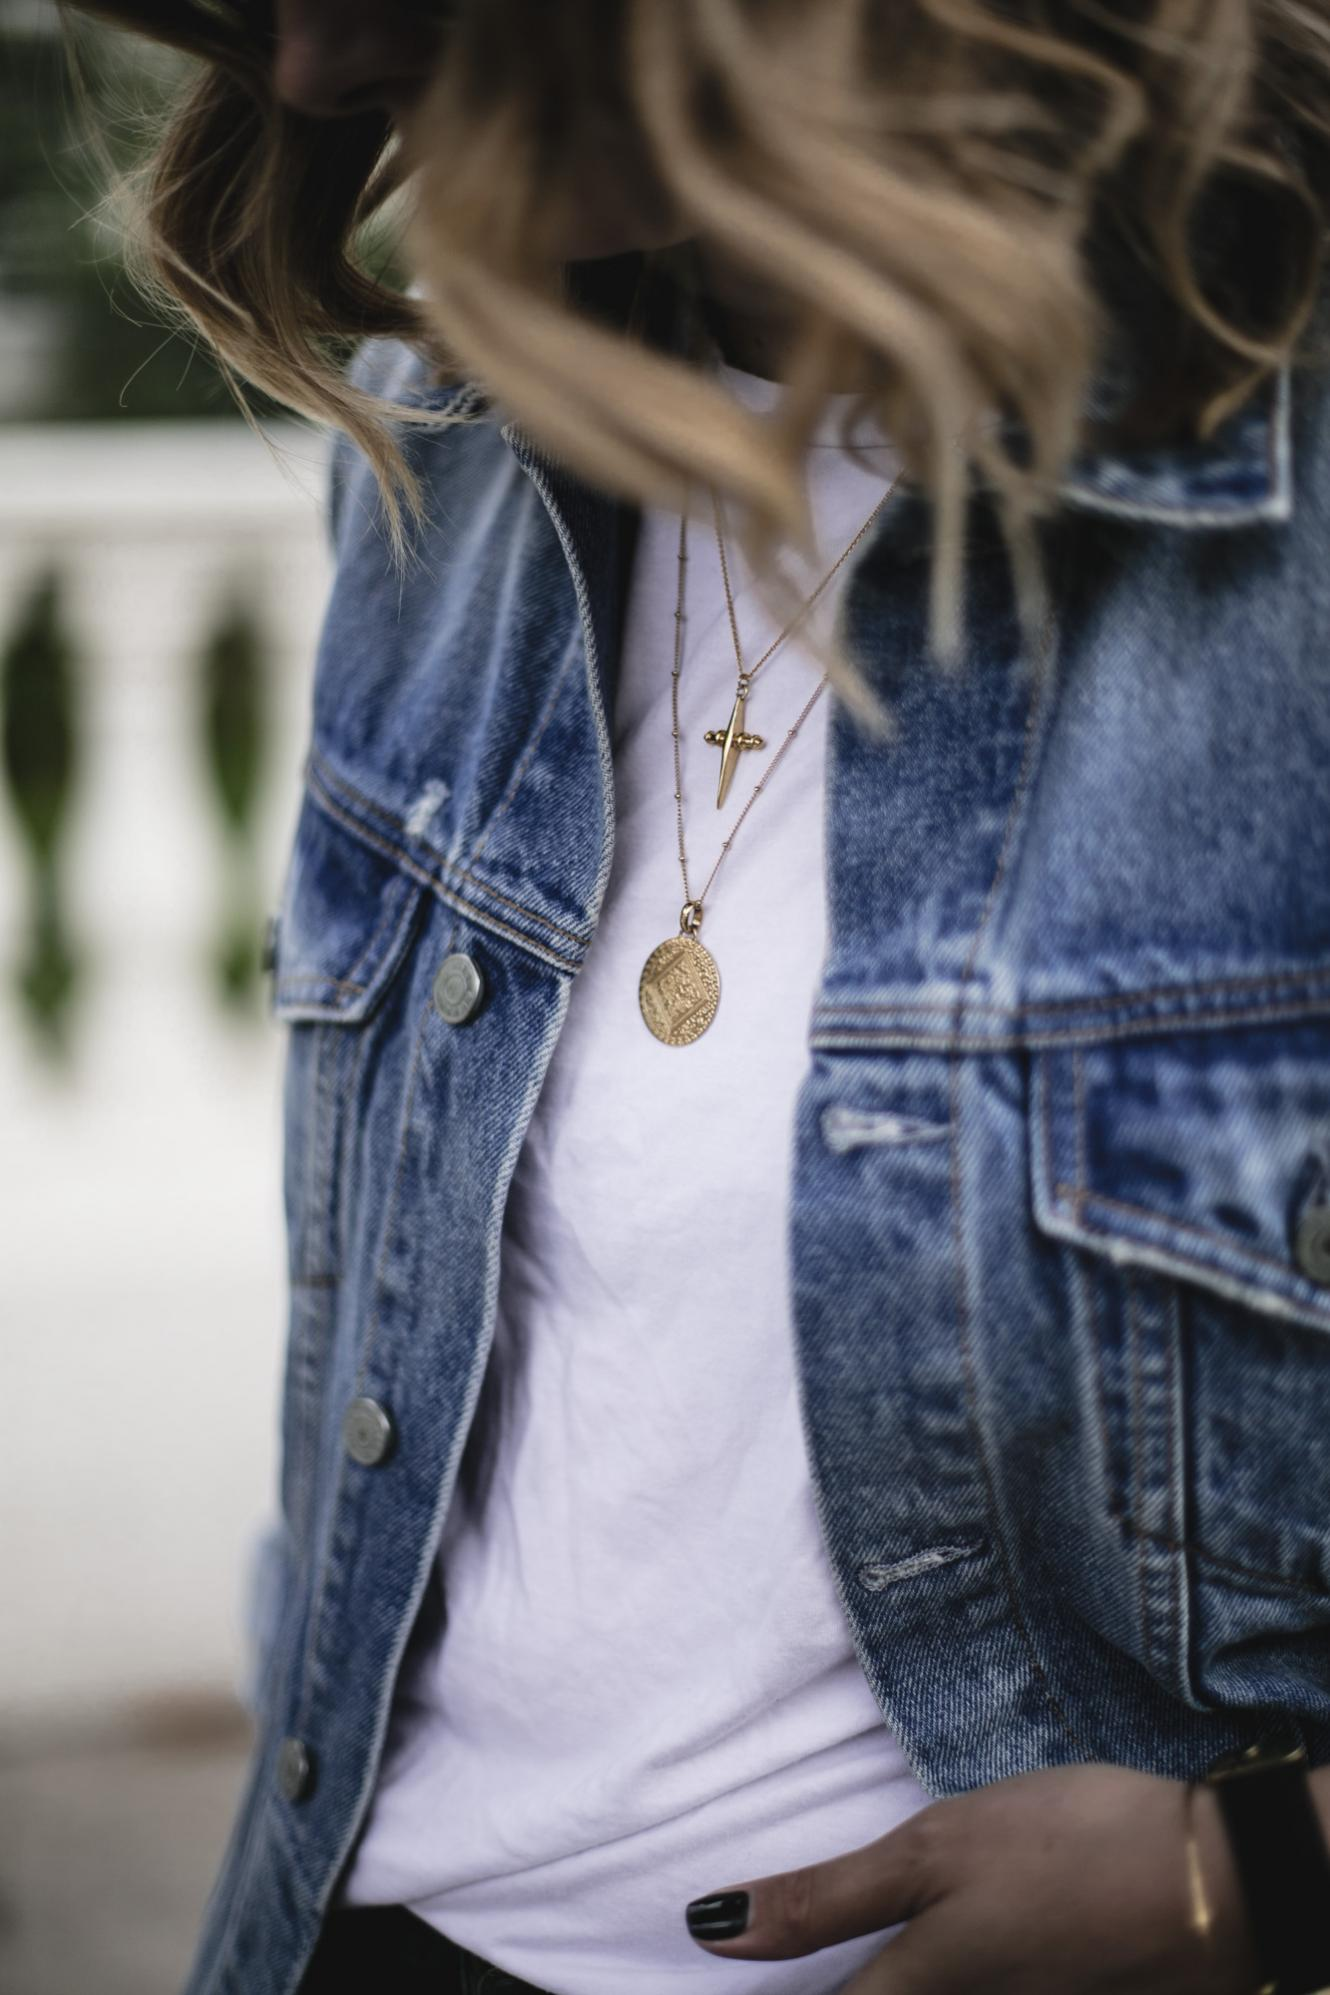 Emma Hill wears denim jacket, white t-shirt, gold layered necklaces